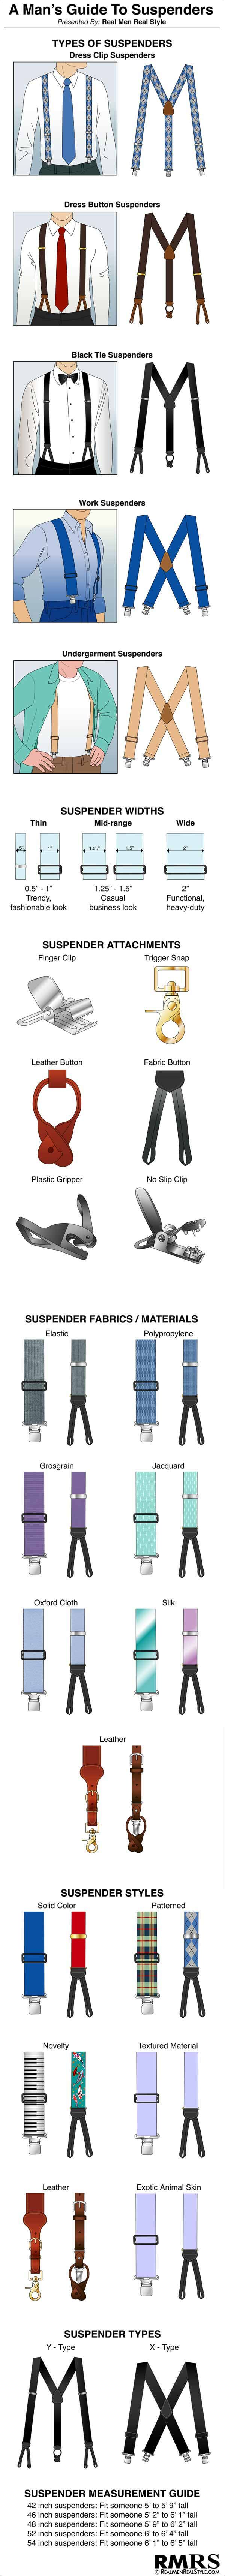 suspenders, how to wear button suspenders